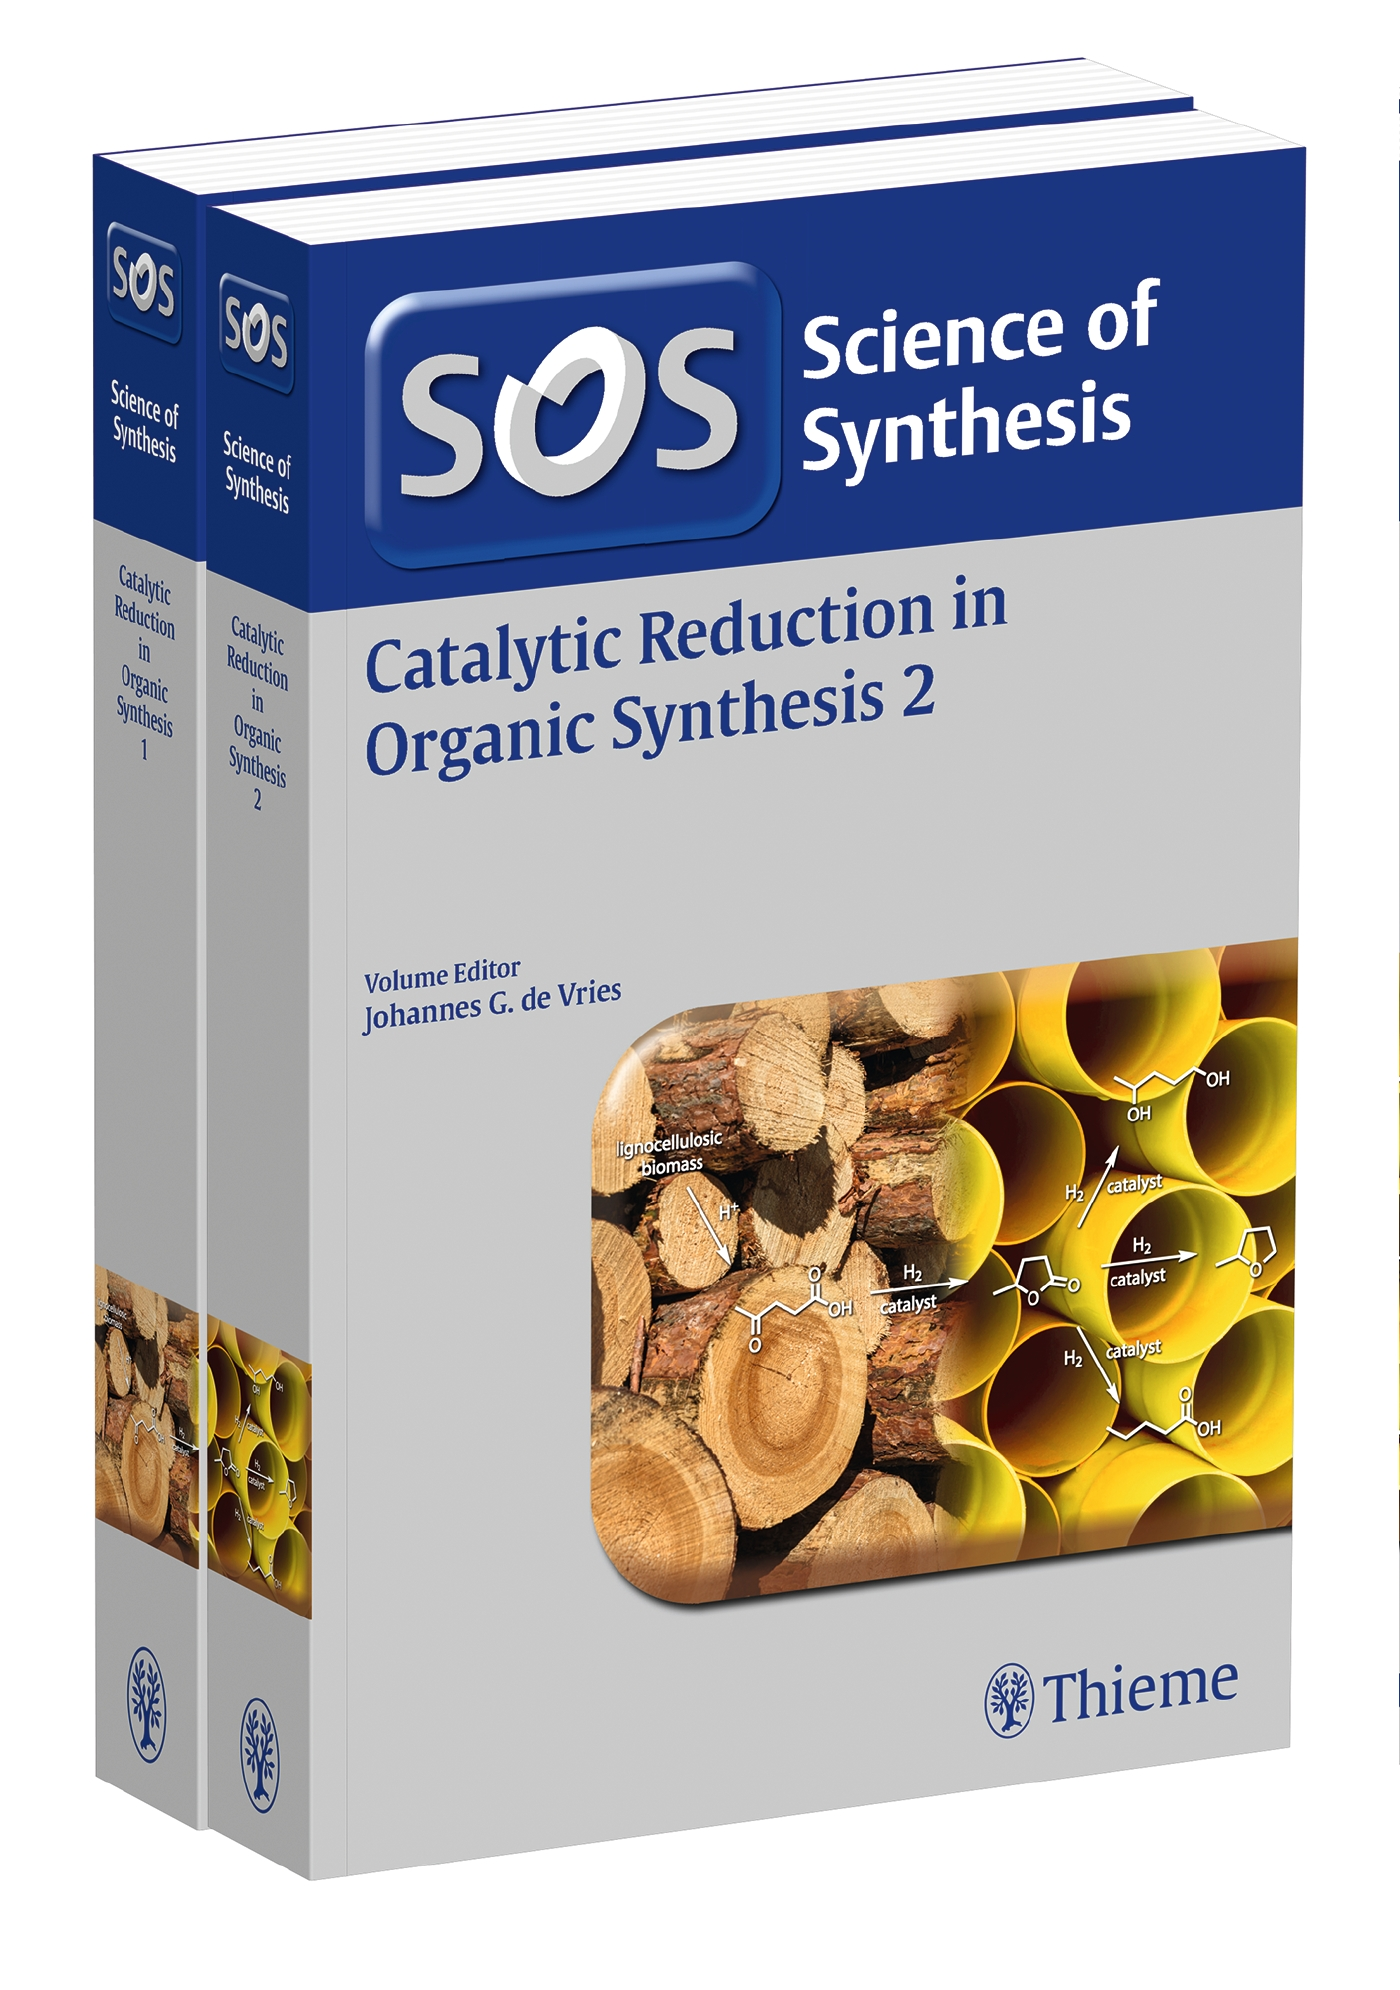 Science of Synthesis: Catalytic Reduction in Organic Synthesis Vol. 1+2, Workbench Edition